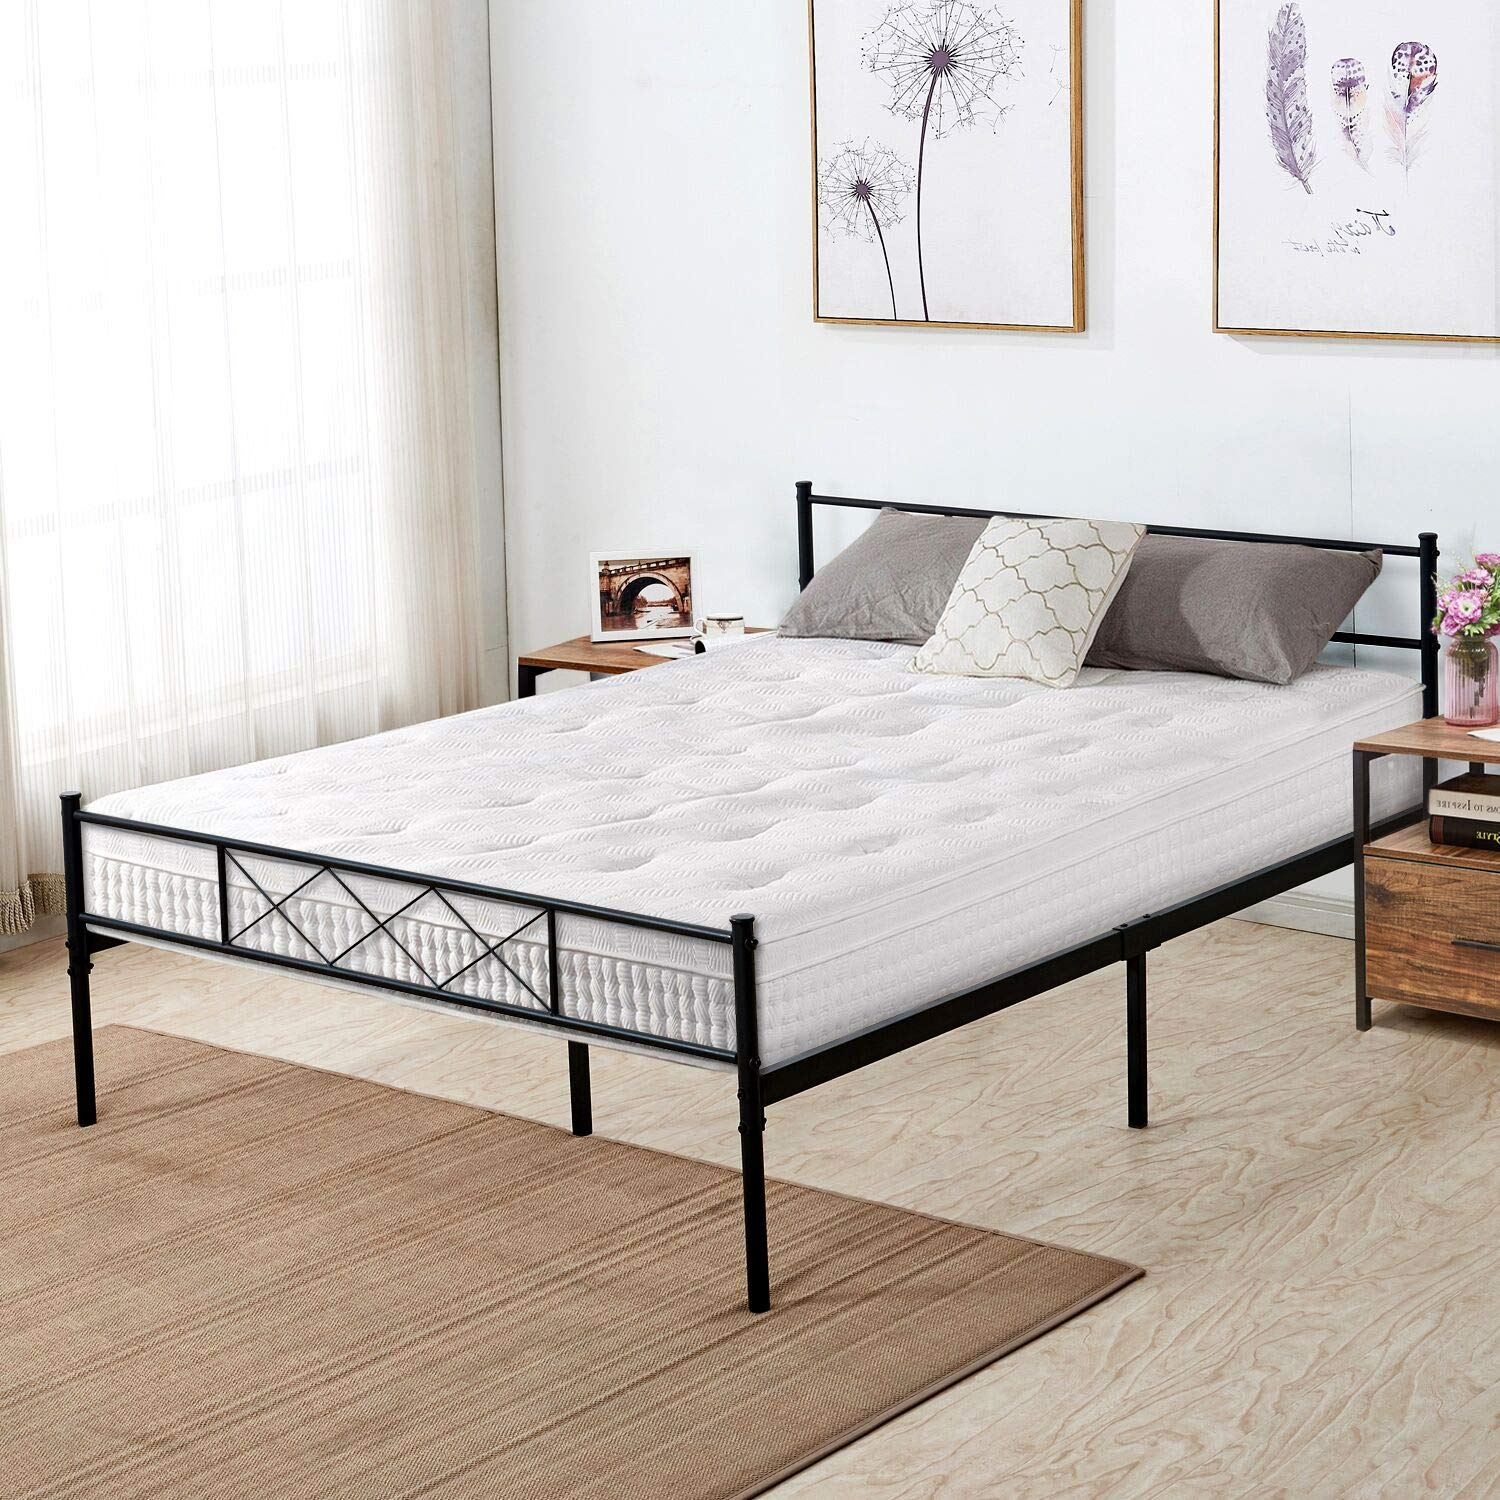 VECELO Metal Platform Bed Frame Mattress Foundation with Headboard & Footboard/Firm Support & Easy Set up Structure Queen Black